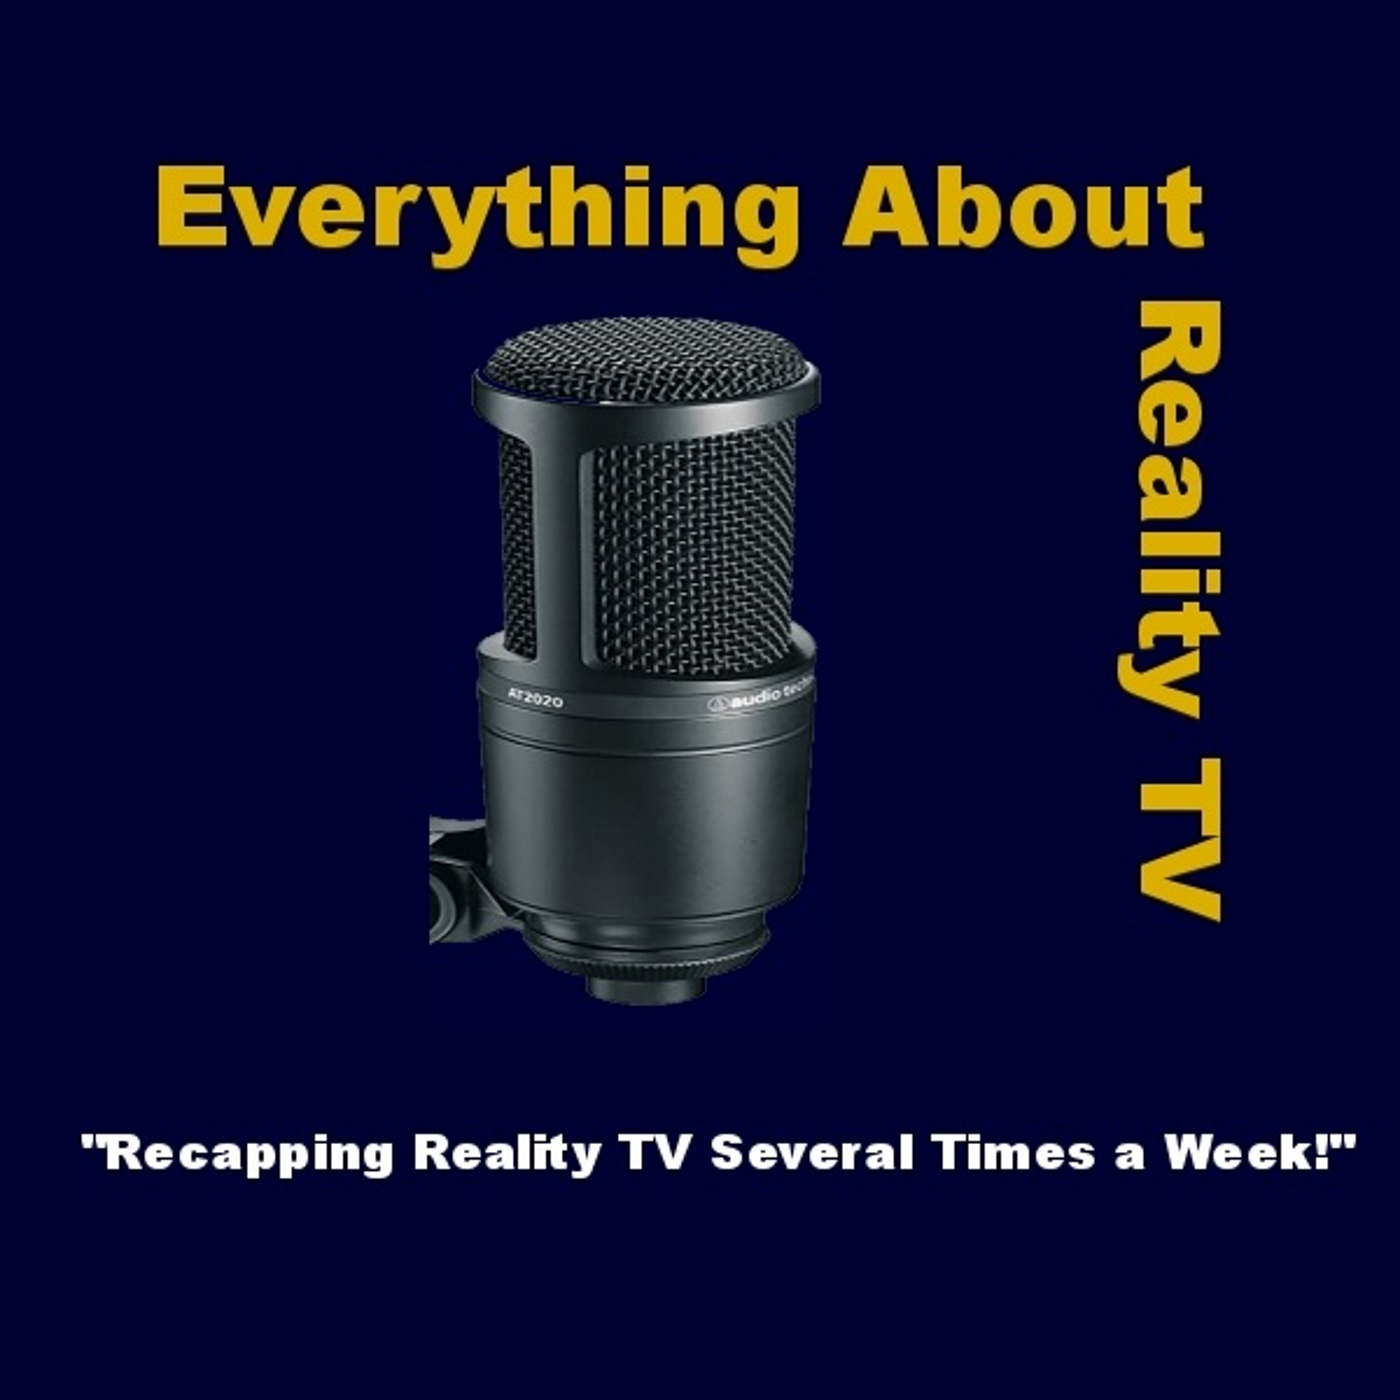 Everything About Reality TV